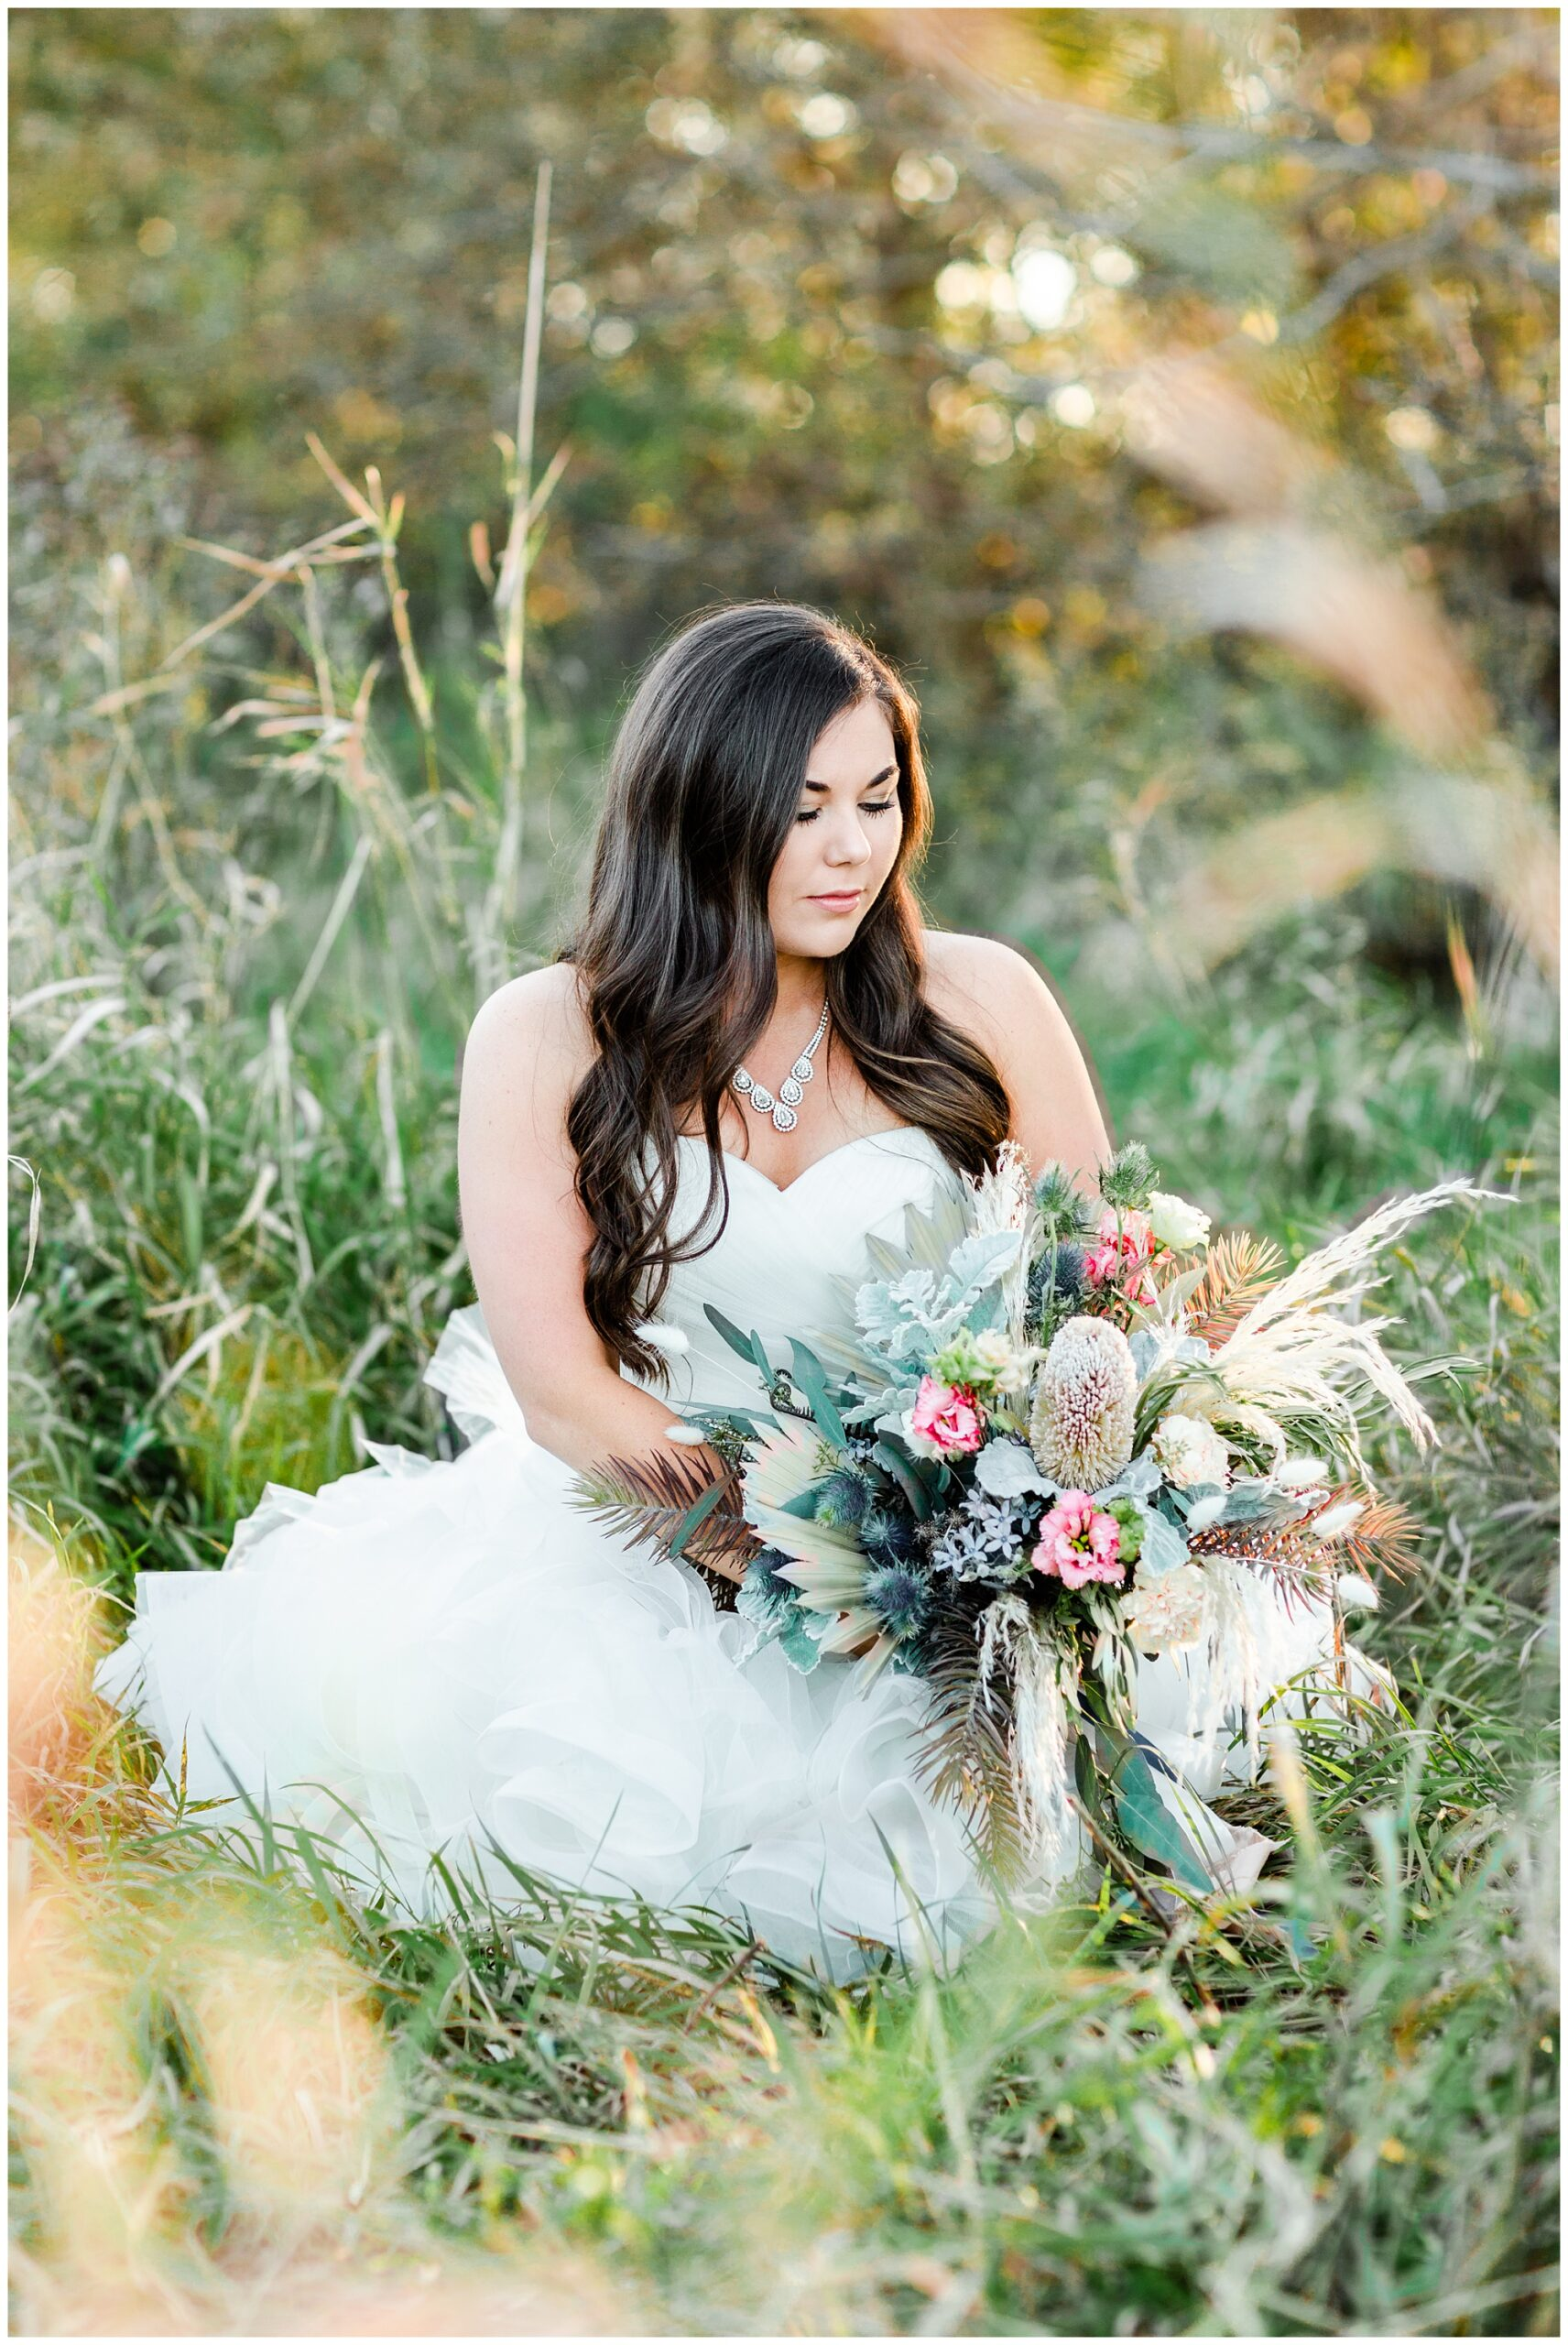 Bridal portrait sitting in a field with a large bouquet with soft florals